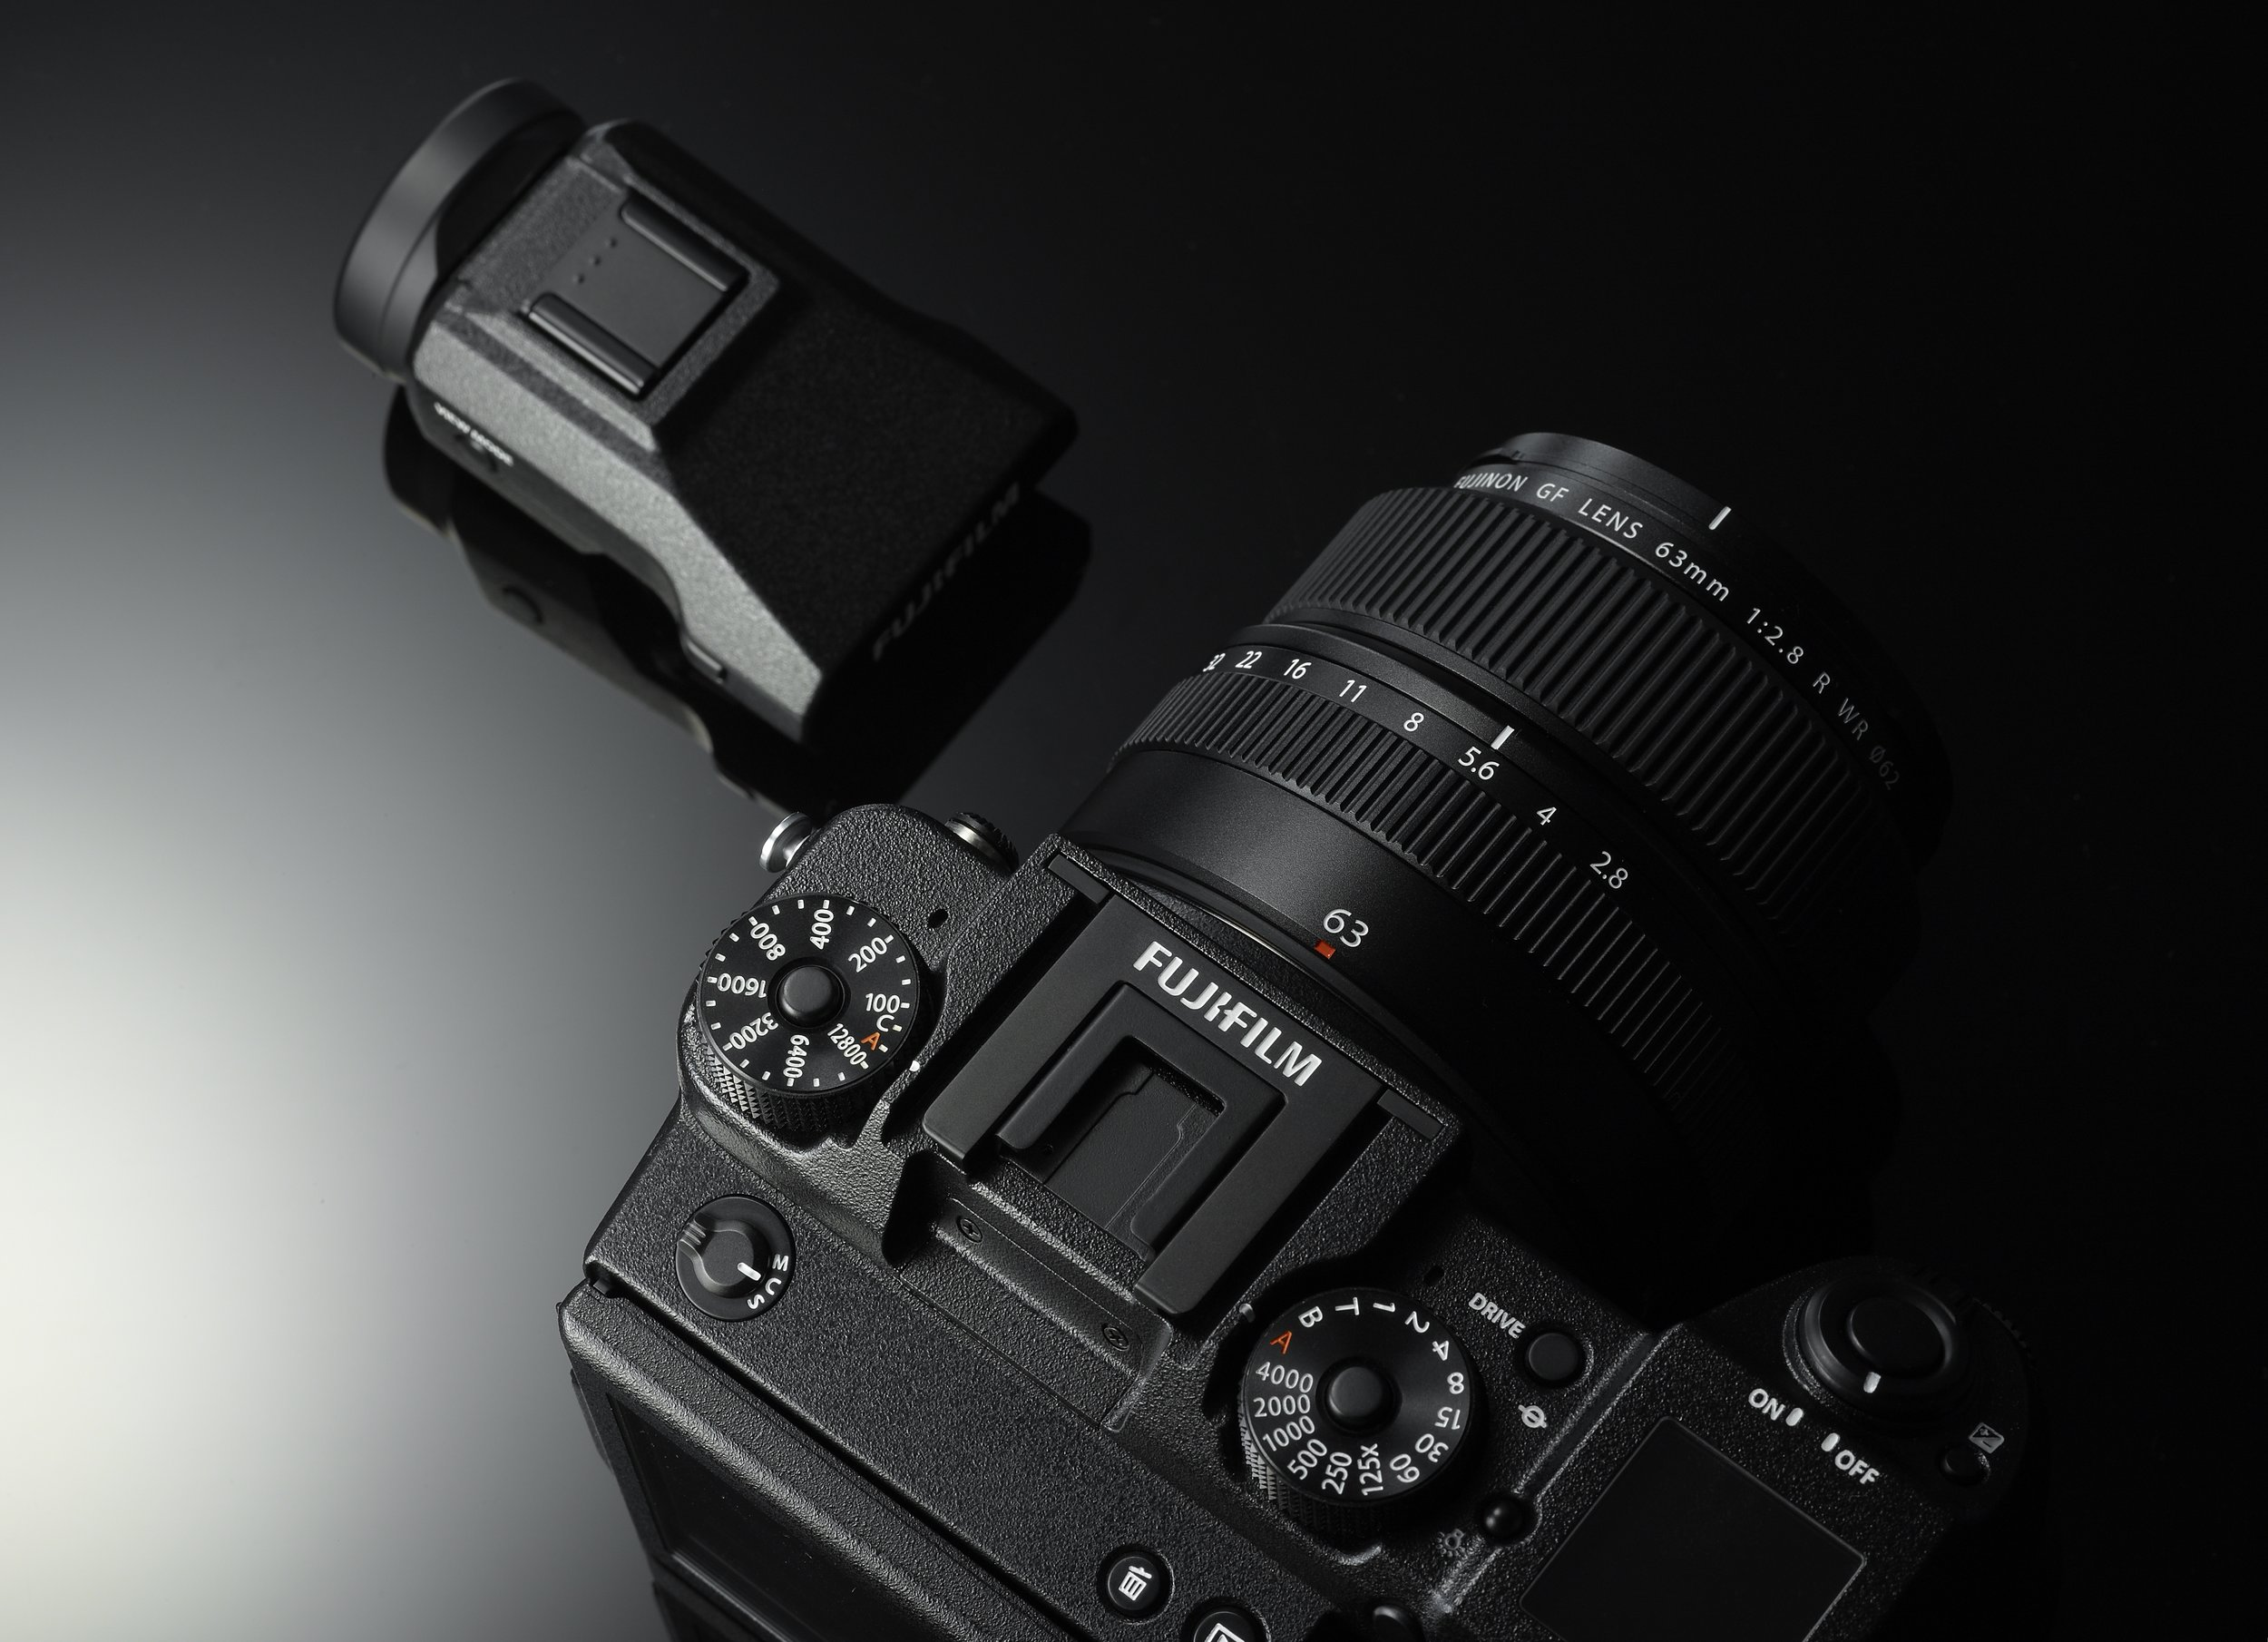 You'll be able to use two EVF viewfinders with the GFX: a regular one and one that can be tilted and rotated, allowing almost every imaginable capture angle. It will even be possible to use an external monitor.